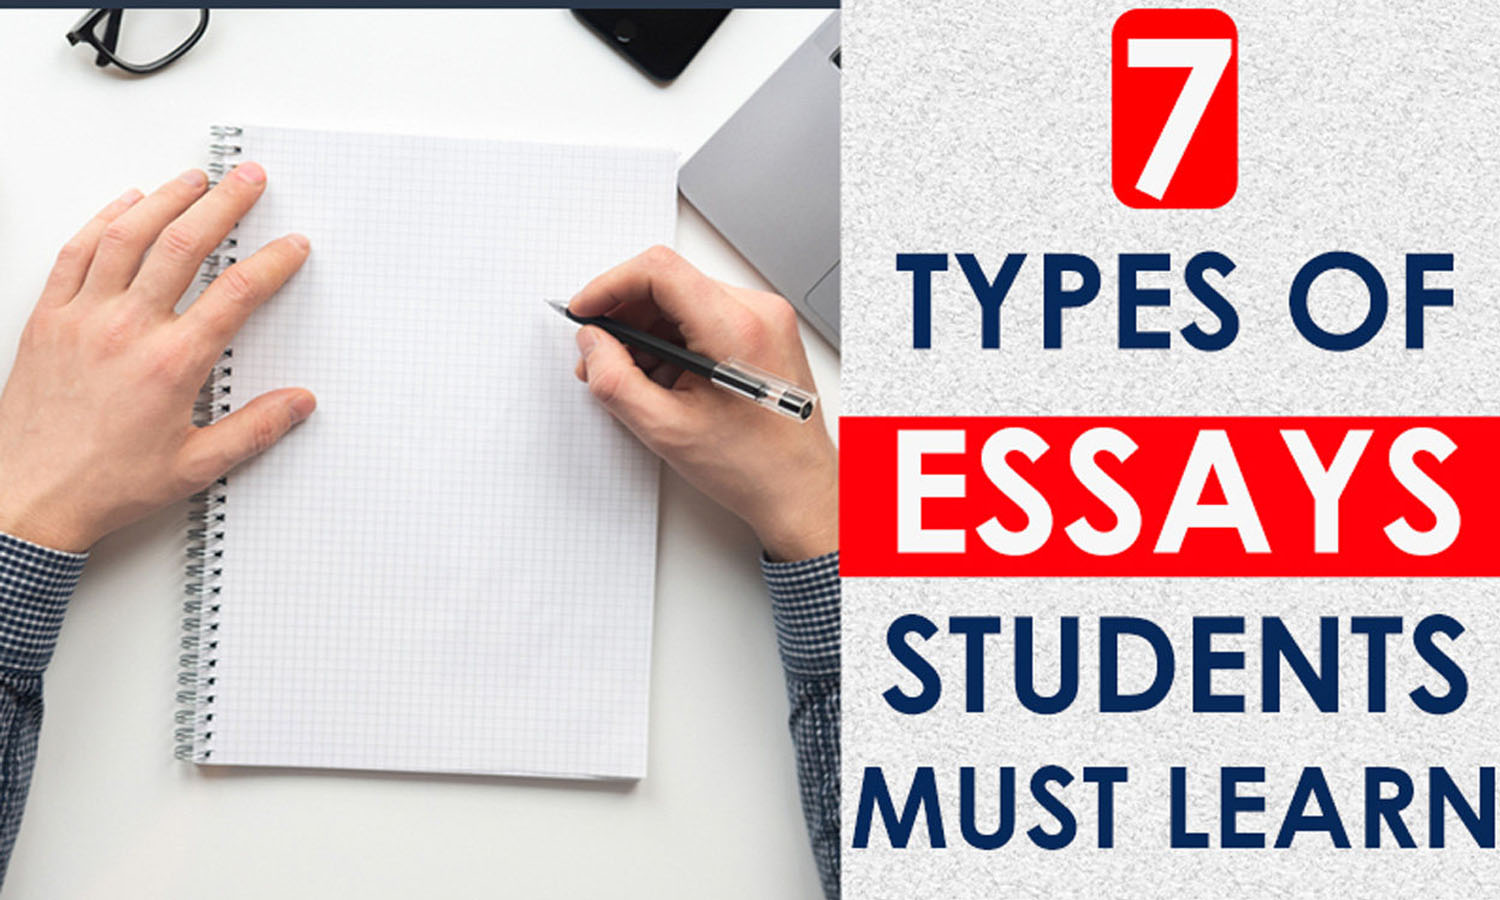 7 Types of Essays Students Must Learn